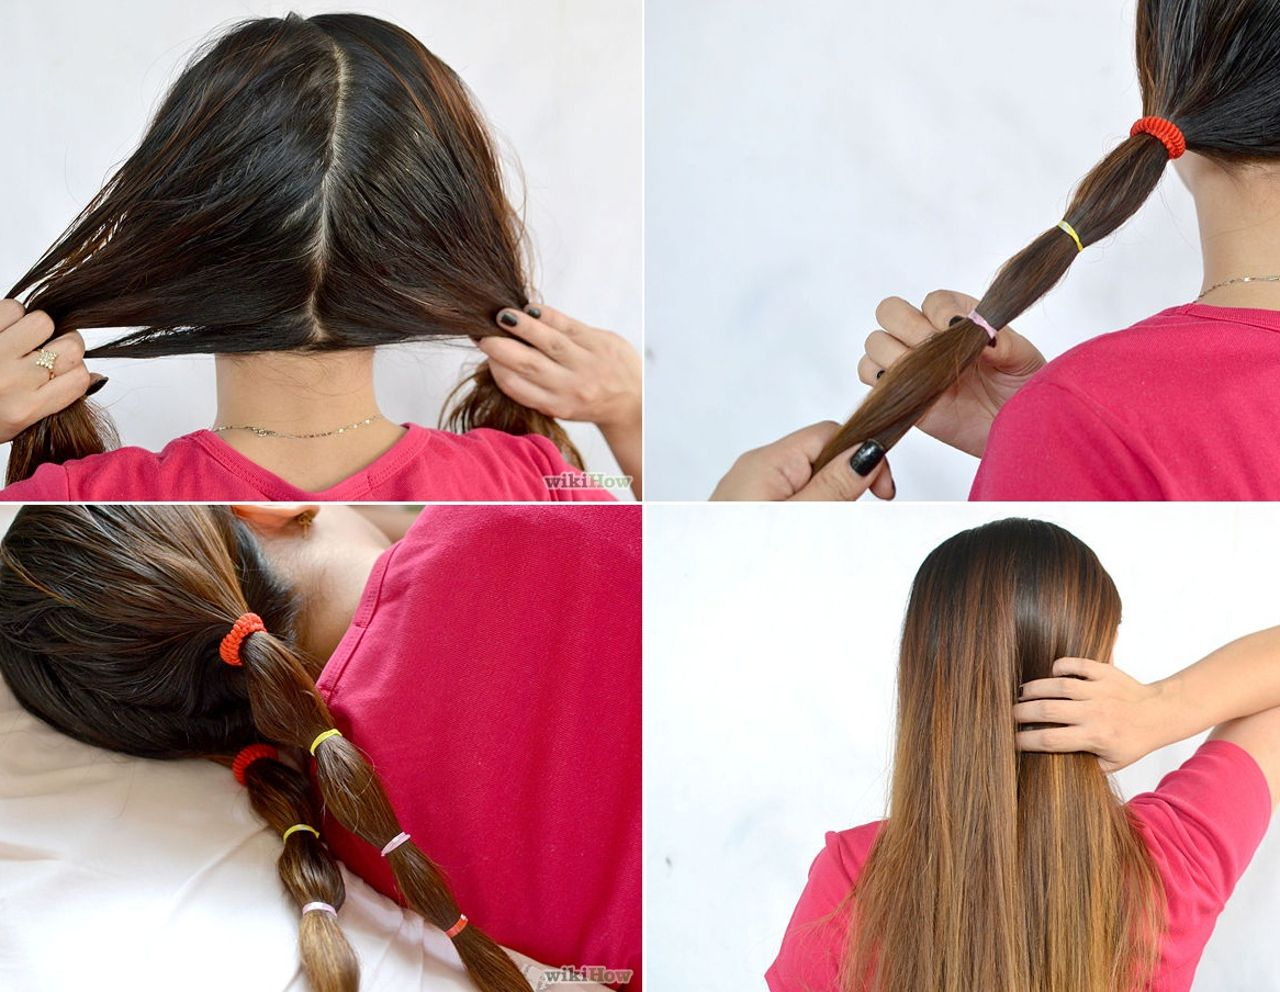 How To Straighten Your Hair Without Causing Any Damage